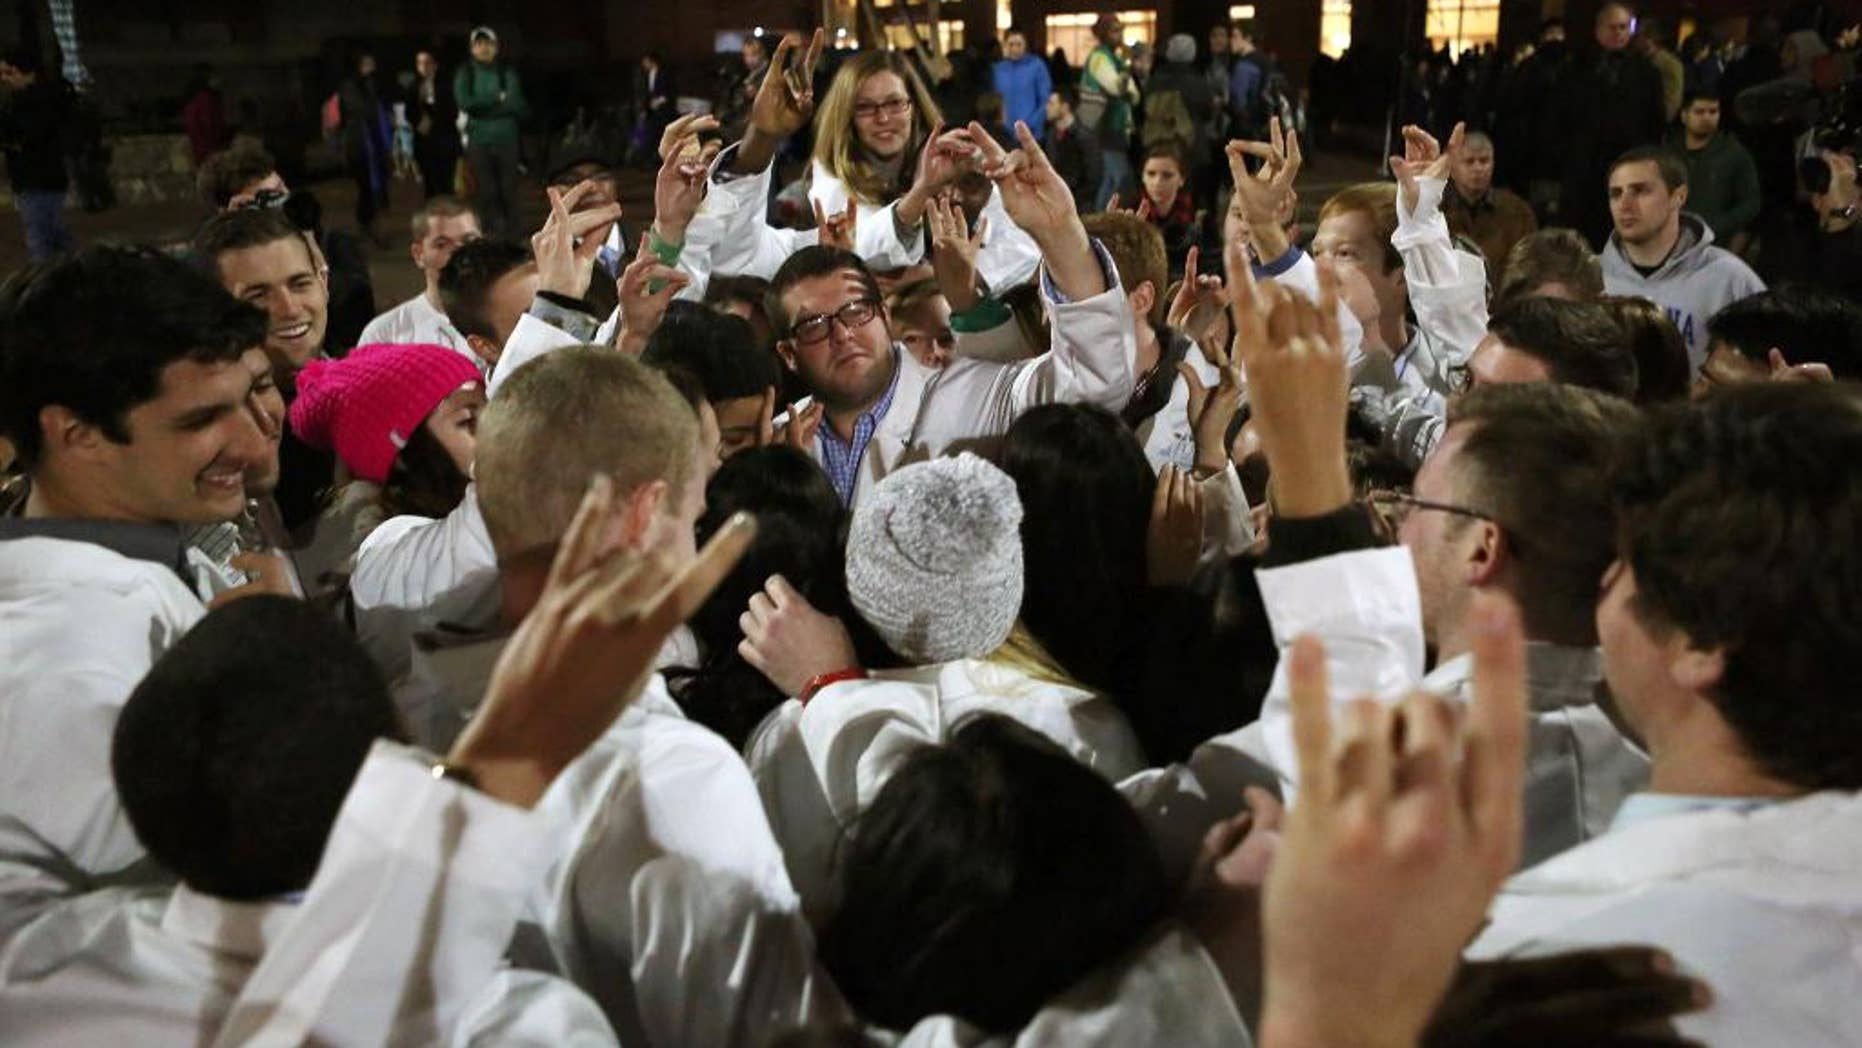 UNC Dental School students make the North Carolina State University Wolfpack sign following a candlelight vigil for their slain classmate, who, along with two others, was killed at a condominium near UNC-Chapel Hill, Wednesday, Feb. 11, 2015, in Chapel Hill, N.C. Craig Stephen Hicks appeared in court on charges of first-degree murder in the Tuesday deaths of Deah Shaddy Barakat, his wife Yusor Mohammad and her sister Razan Mohammad Abu-Salha. (AP Photo/The News & Observer, Al Drago)